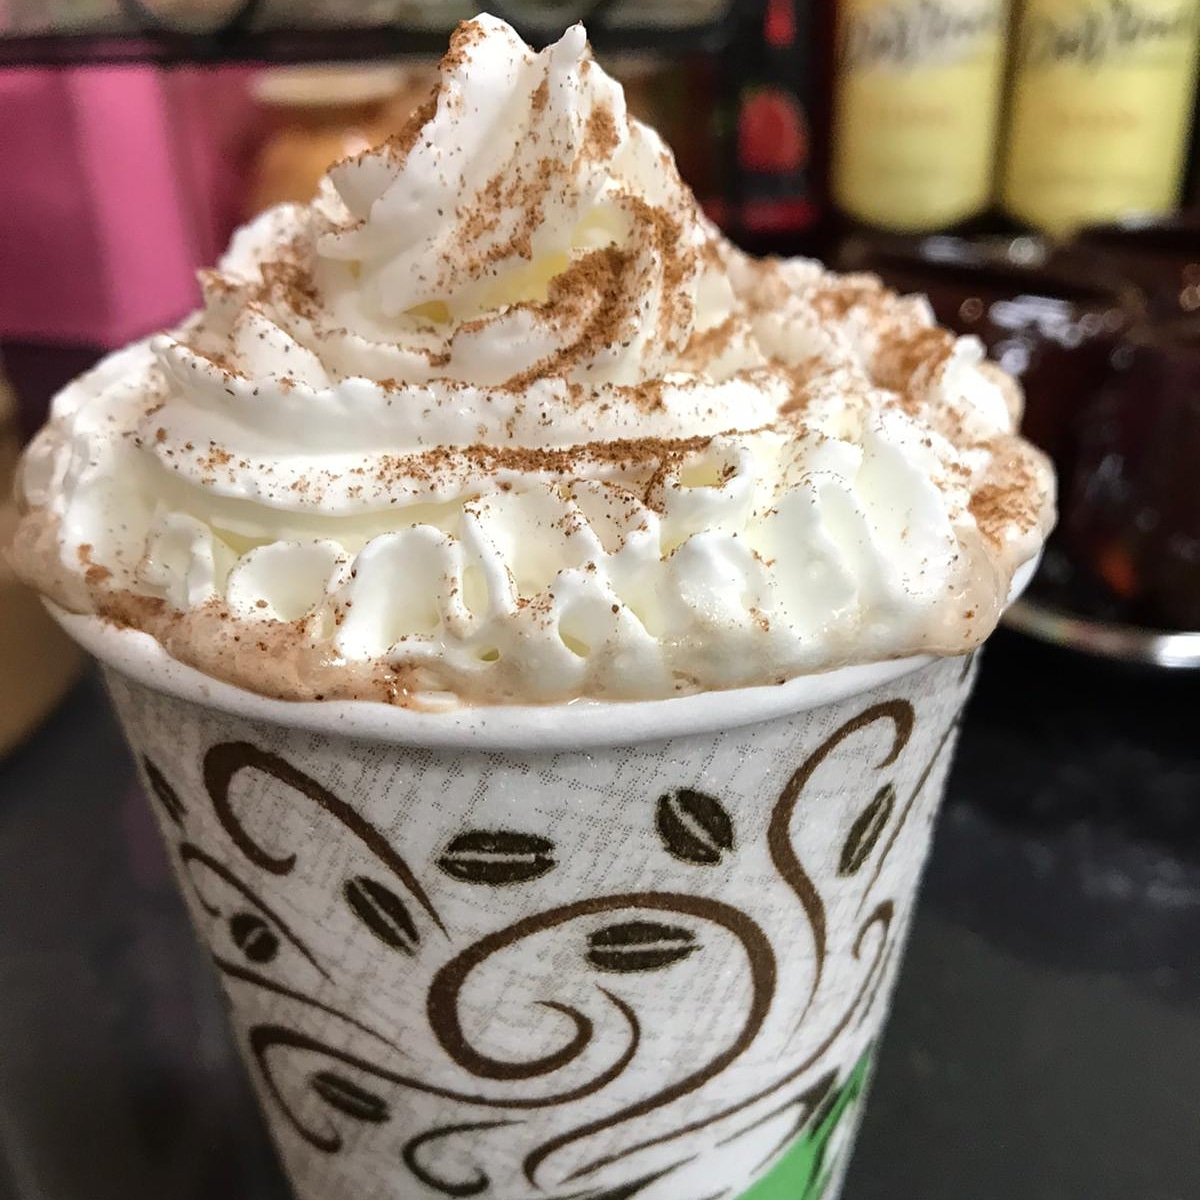 Rainy days are more enjoyable when sipping on a delicious latte topped with yummy whipped cream🥰! Open late everyday for carry-out!  #latte #lavazza #espresso #coffeelover #coffeebar #whippedcream #rainyday #wednesdayvibes #newyear #visithotsprings #hotspringsarkansas #pickmeup